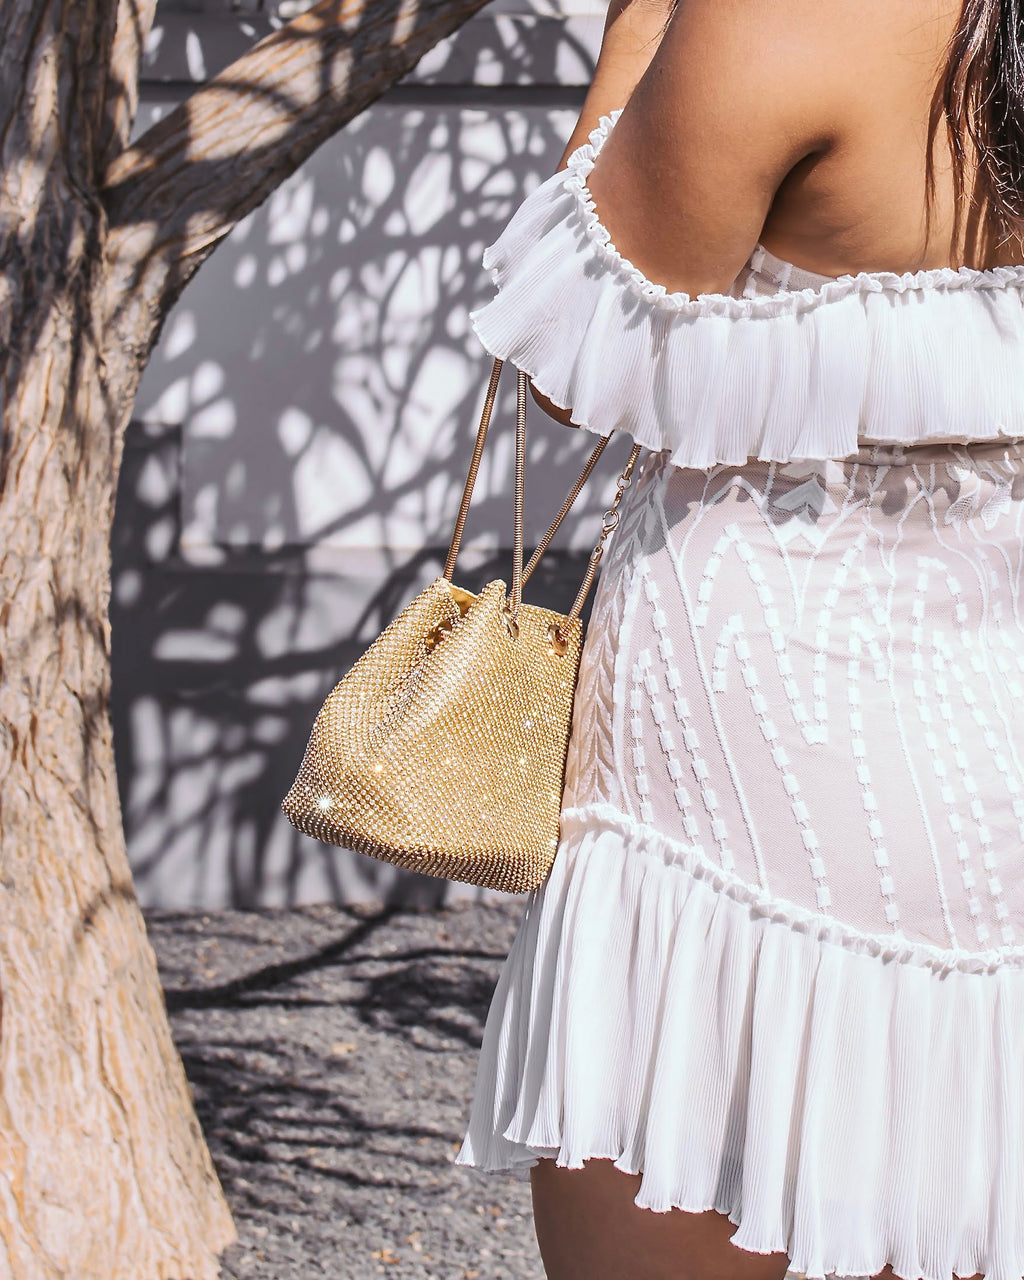 Rhinestone Mesh Convertible Bucket Bag - Gold